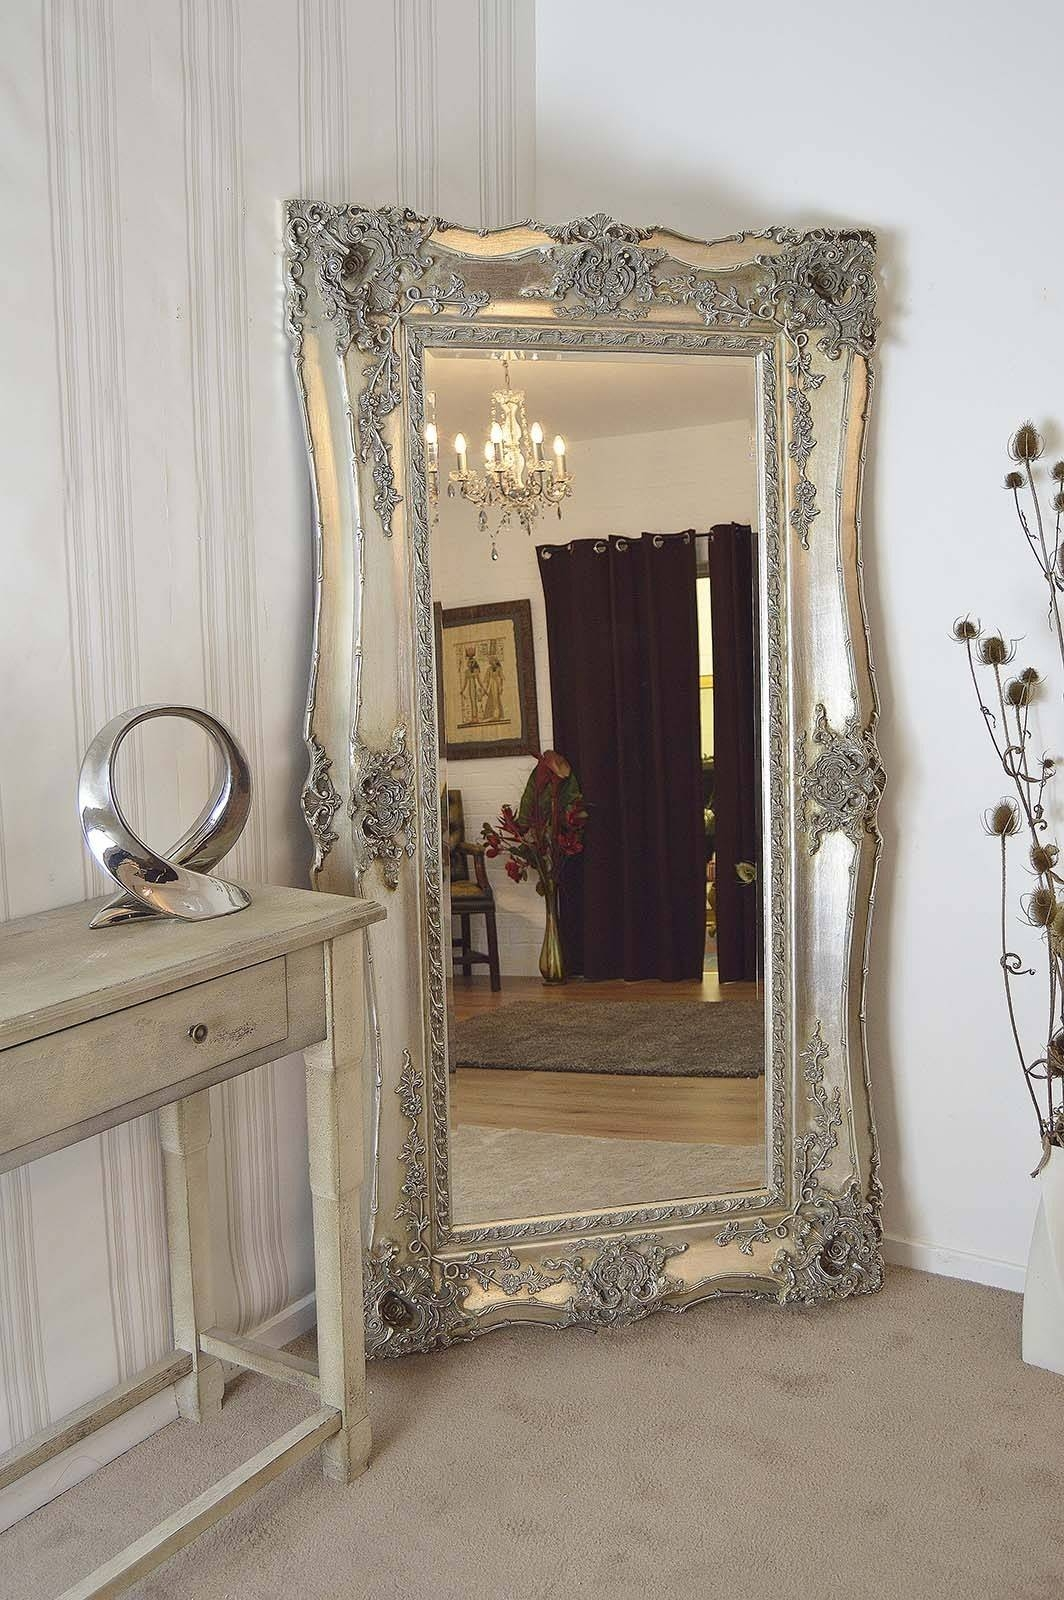 Large Antique Wall Mirror Ornate Frame Antique Ornate Wall Mirrors Inside Antique Ornate Mirrors (View 7 of 25)